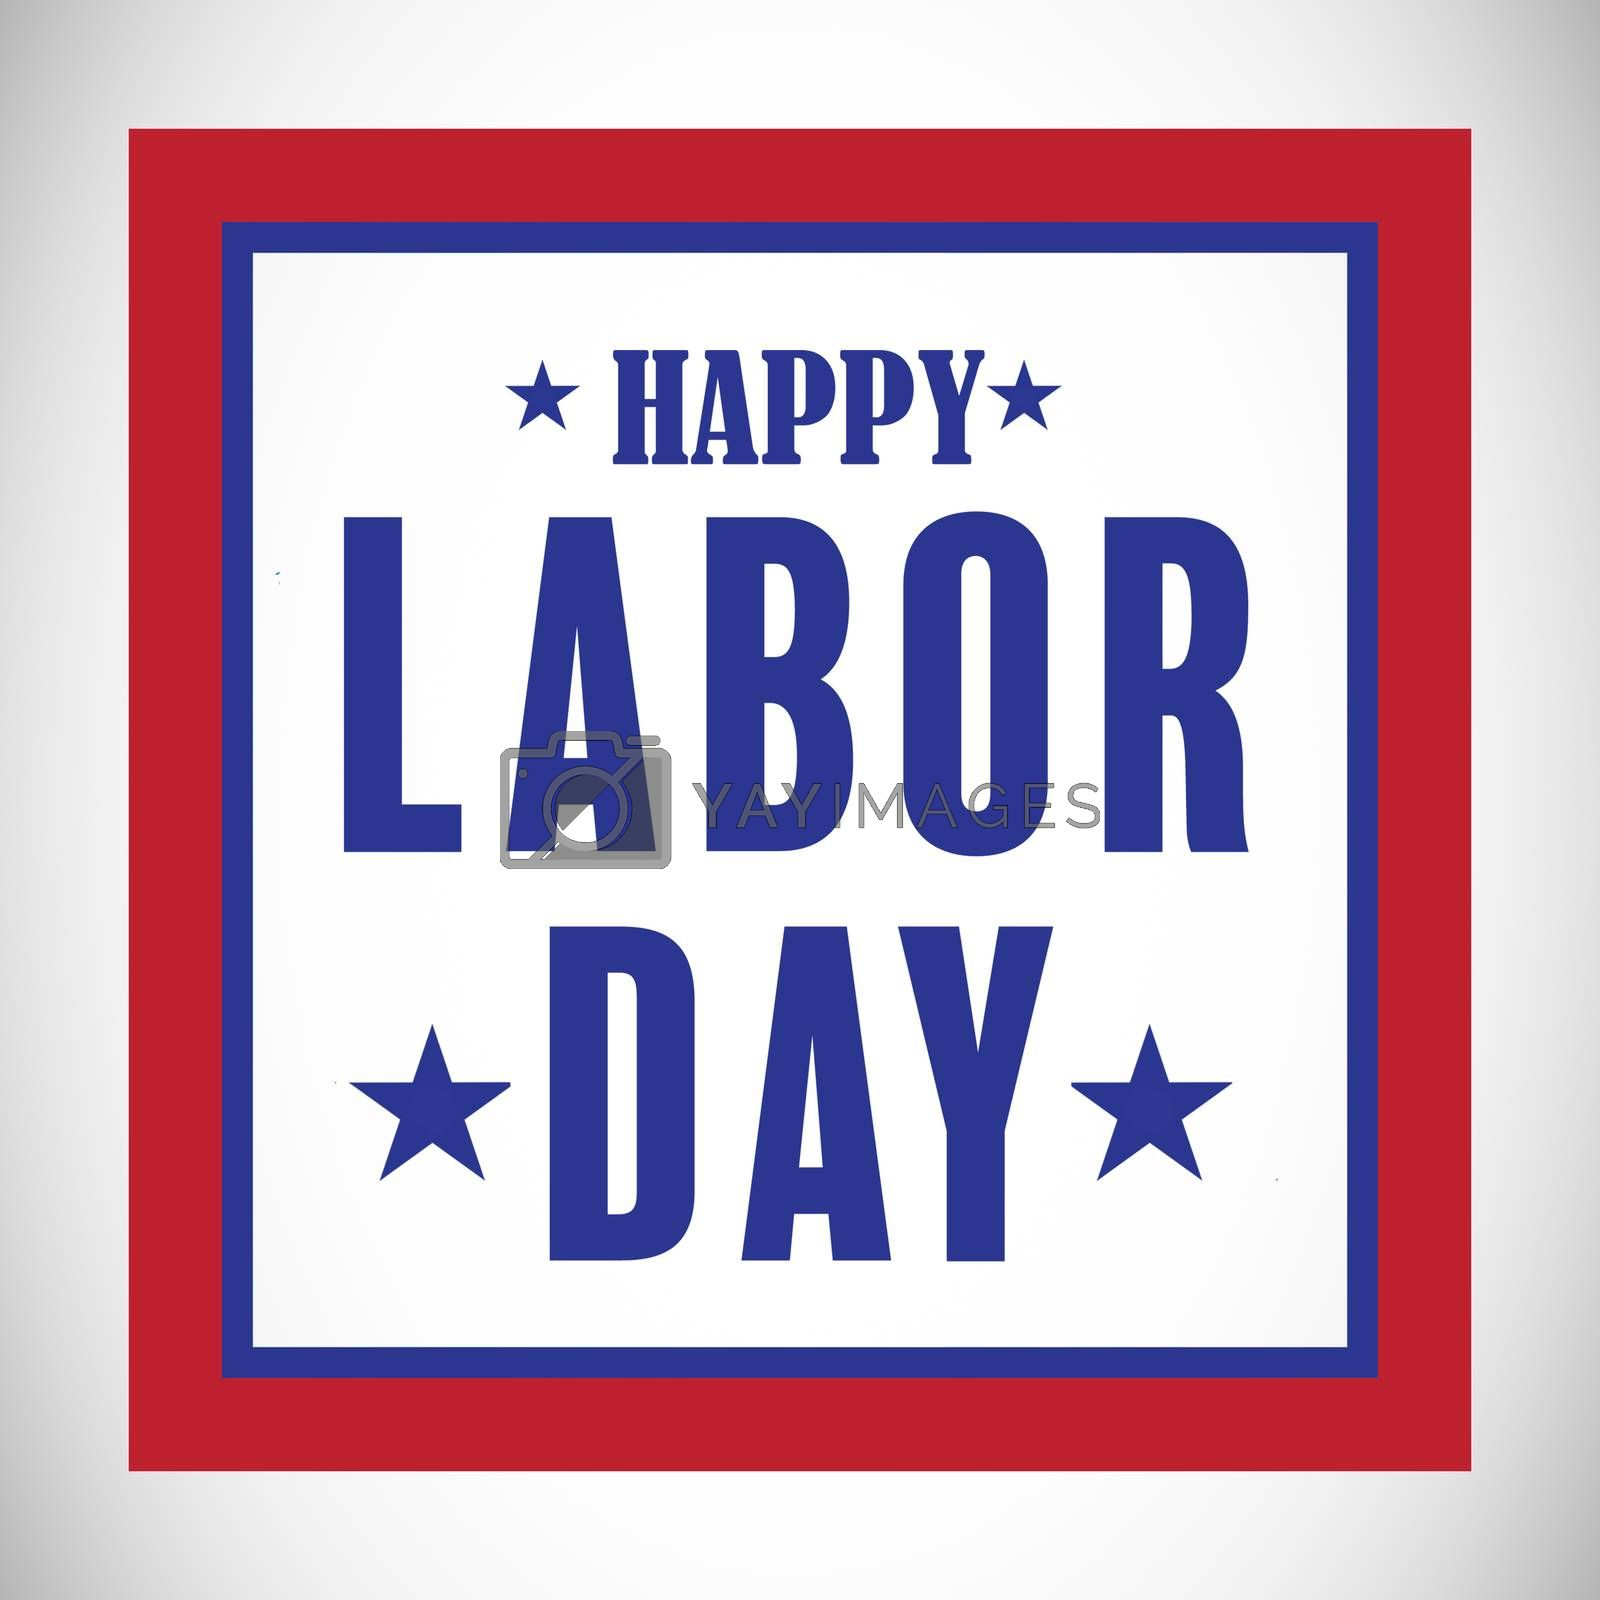 Composite image of happy labor day poster by Wavebreakmedia